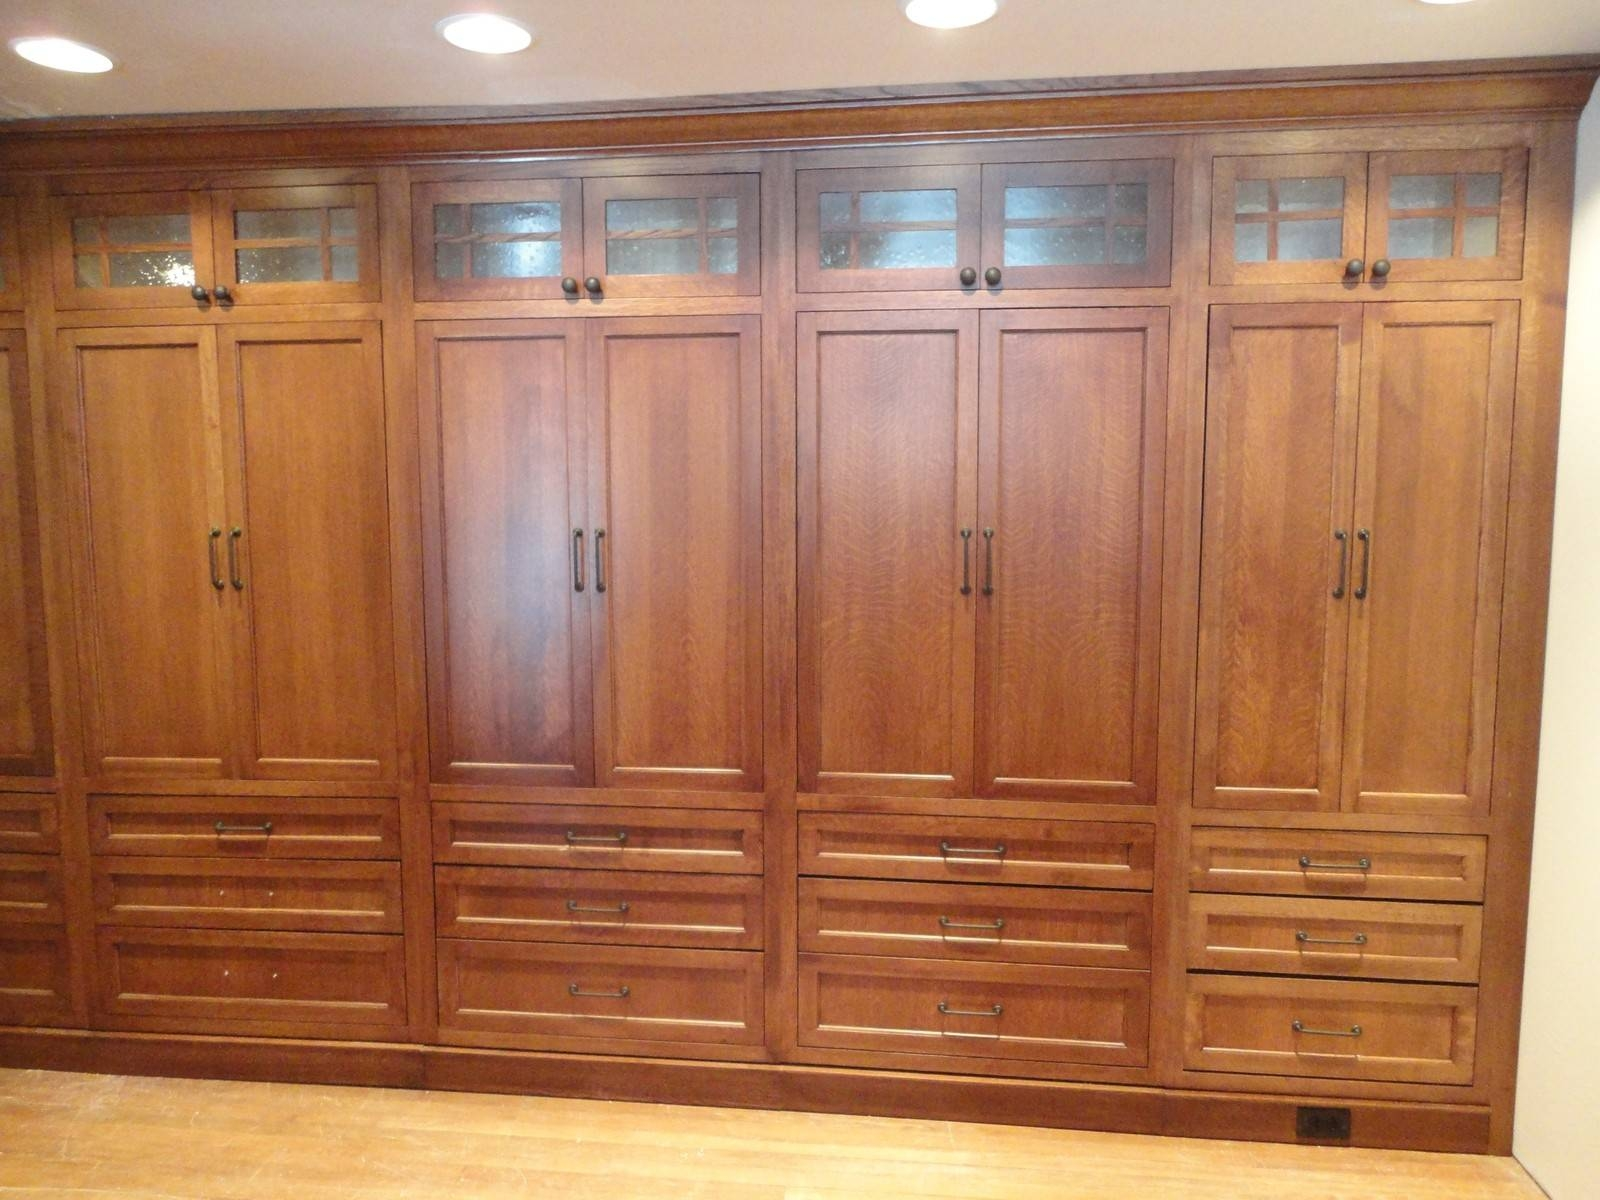 High Cream Wooden Wardrobe With Sliding Door Also Shelves Inside For Wardrobe With Drawers And Shelves (View 21 of 30)